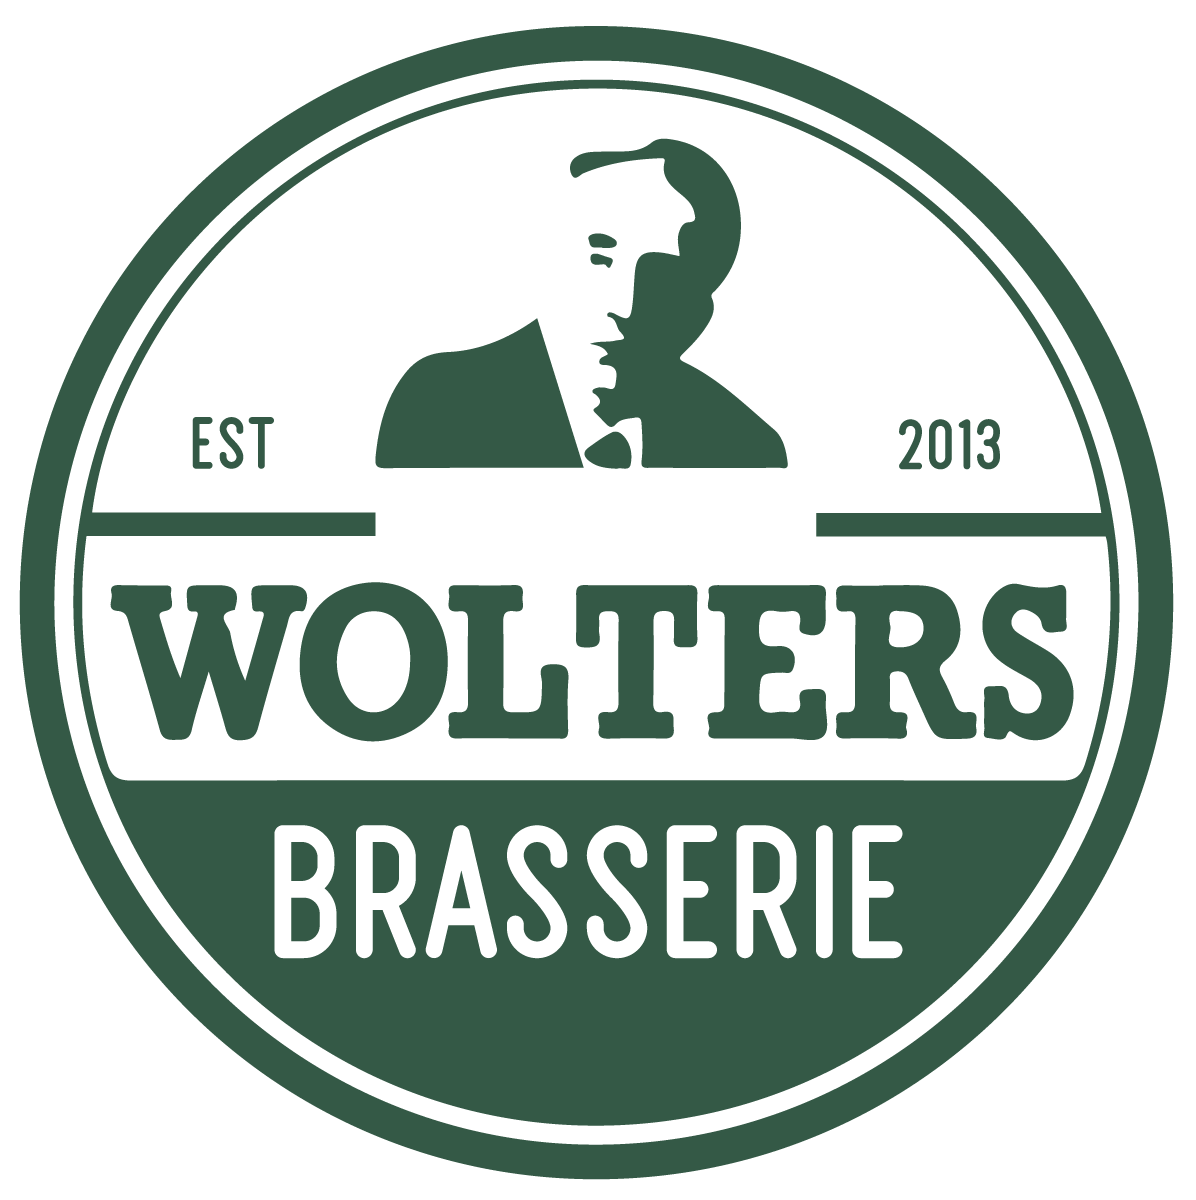 Brasserie Wolters